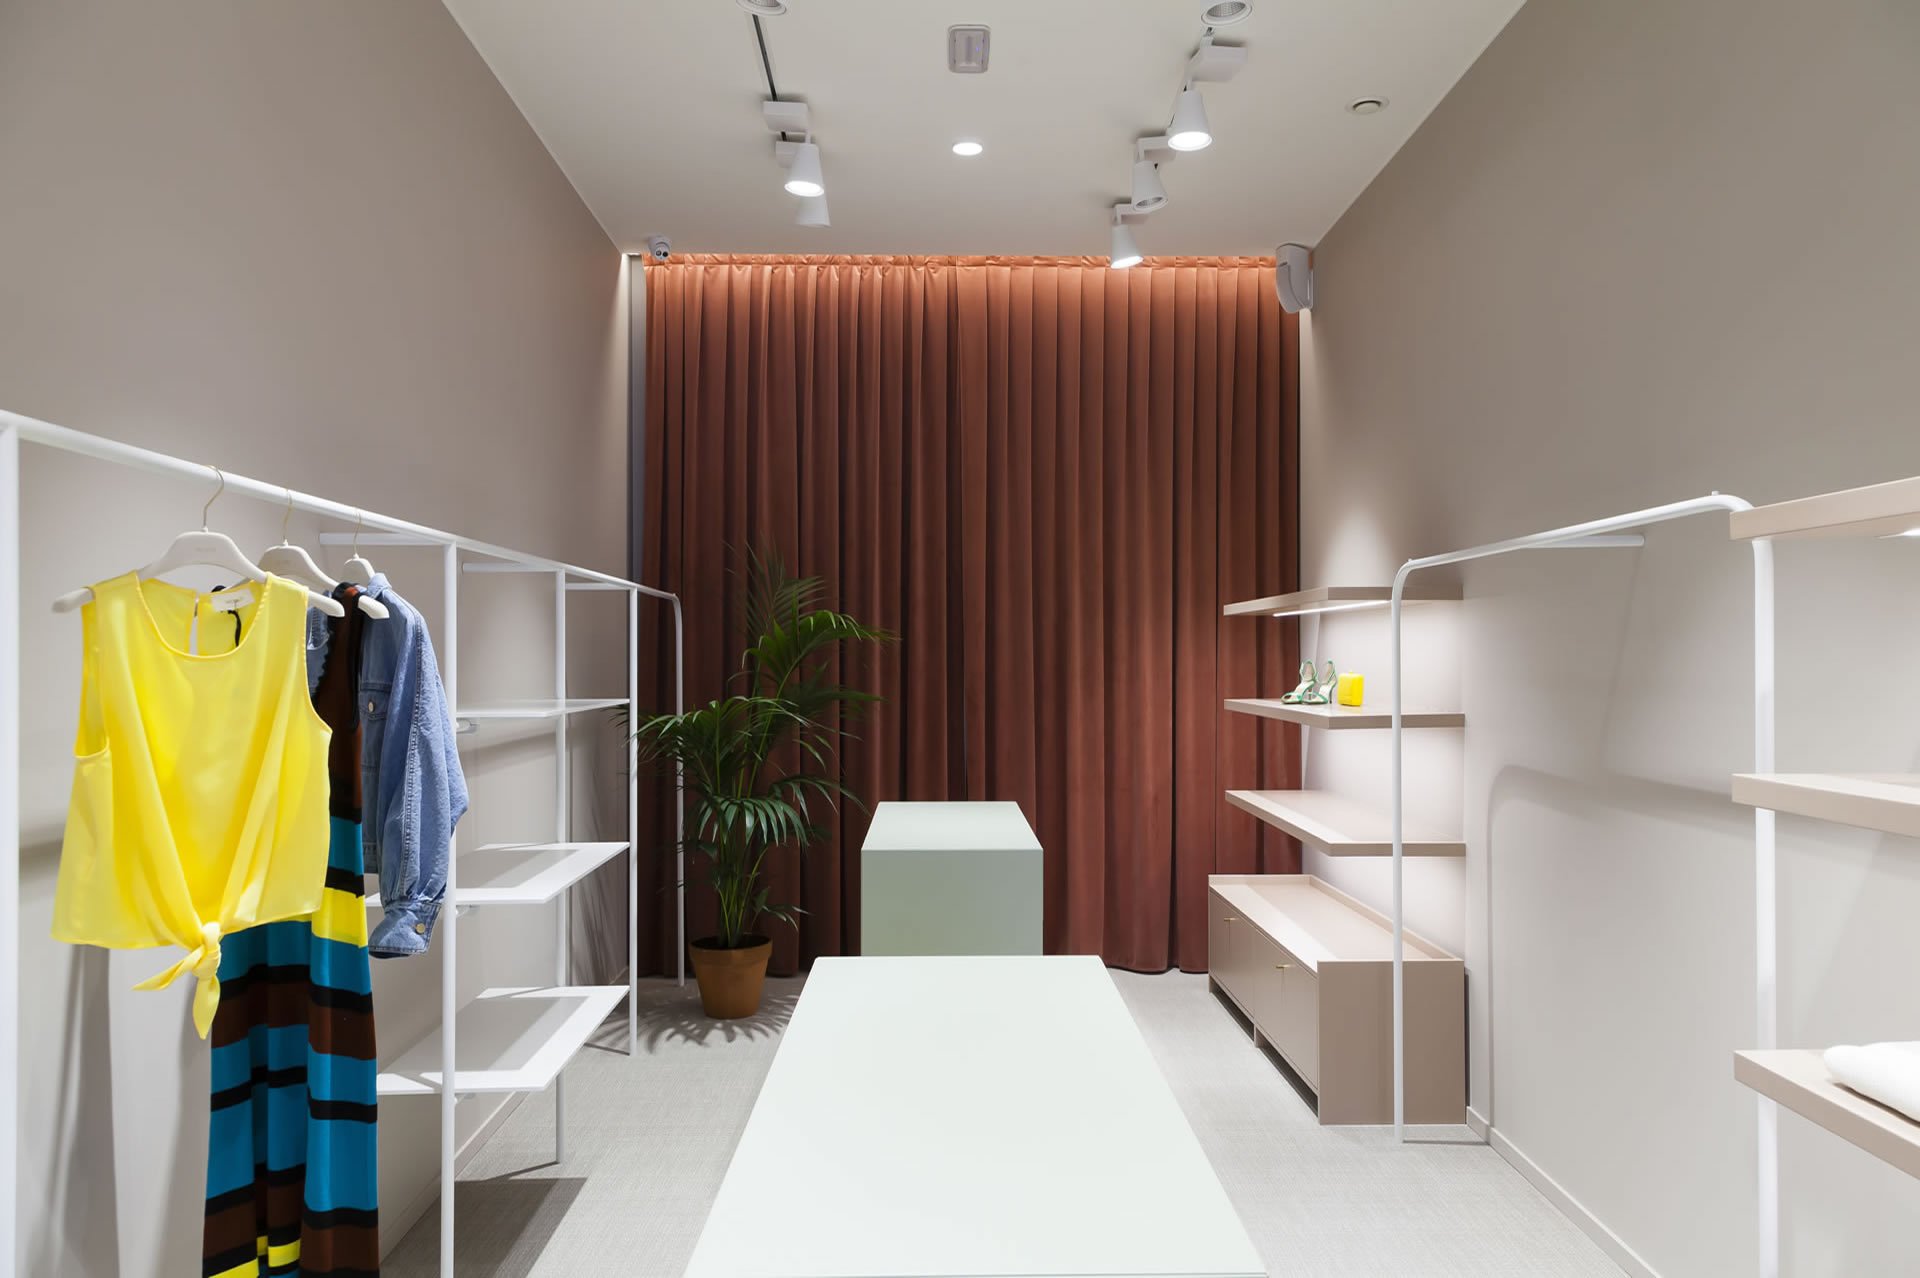 plas fashion gravina 2019/05 plas fashion store gravina puglia bari interior design project arredo d interni midcentury pleroo architects studio.jpg